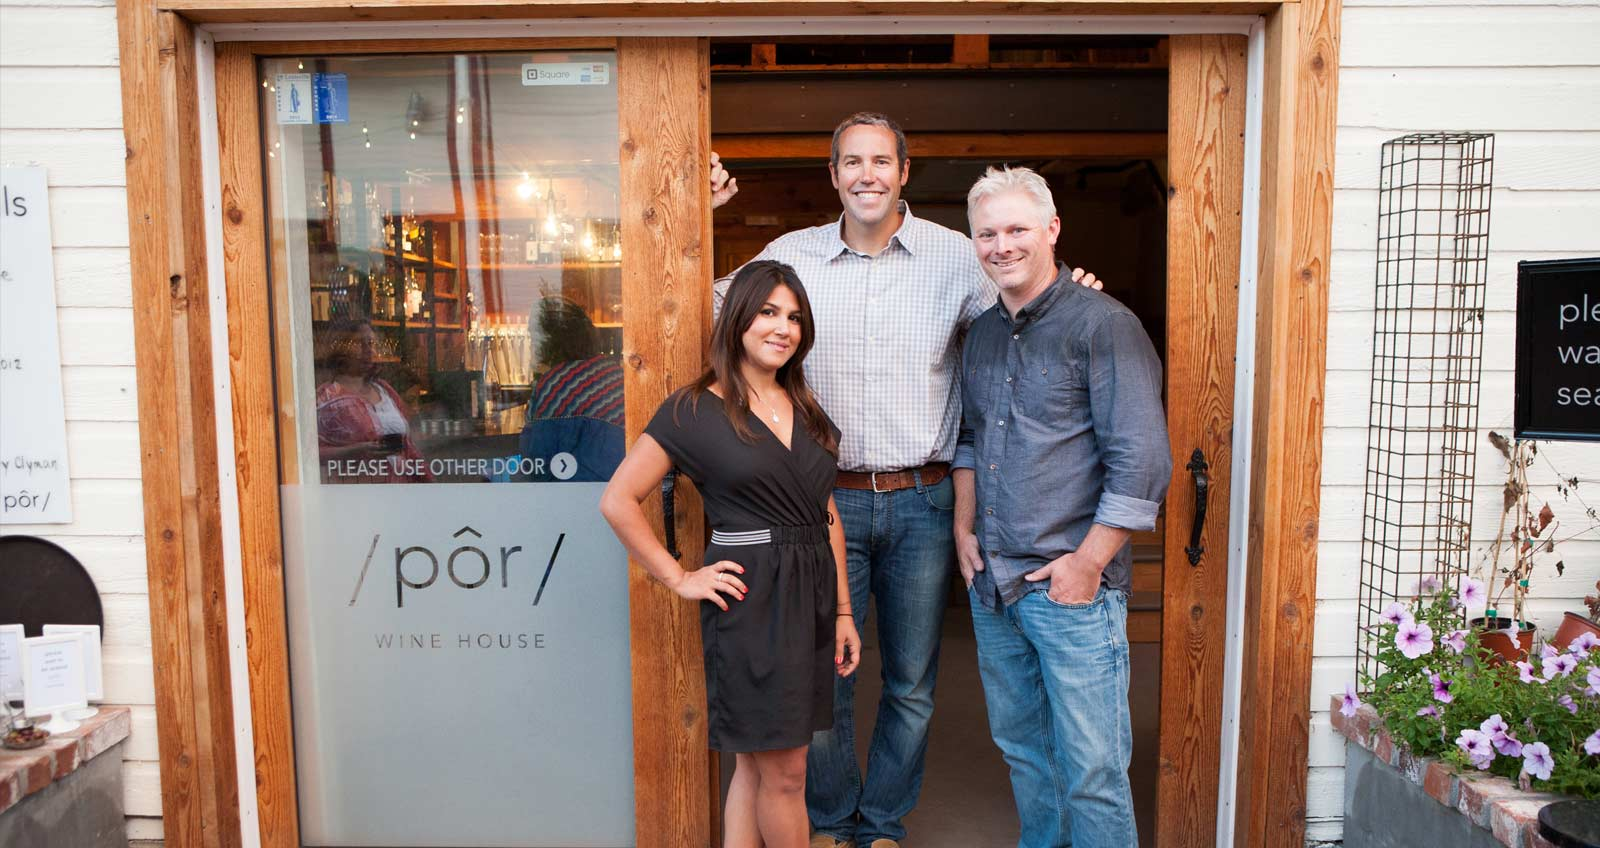 Featured Business: Por Wine House